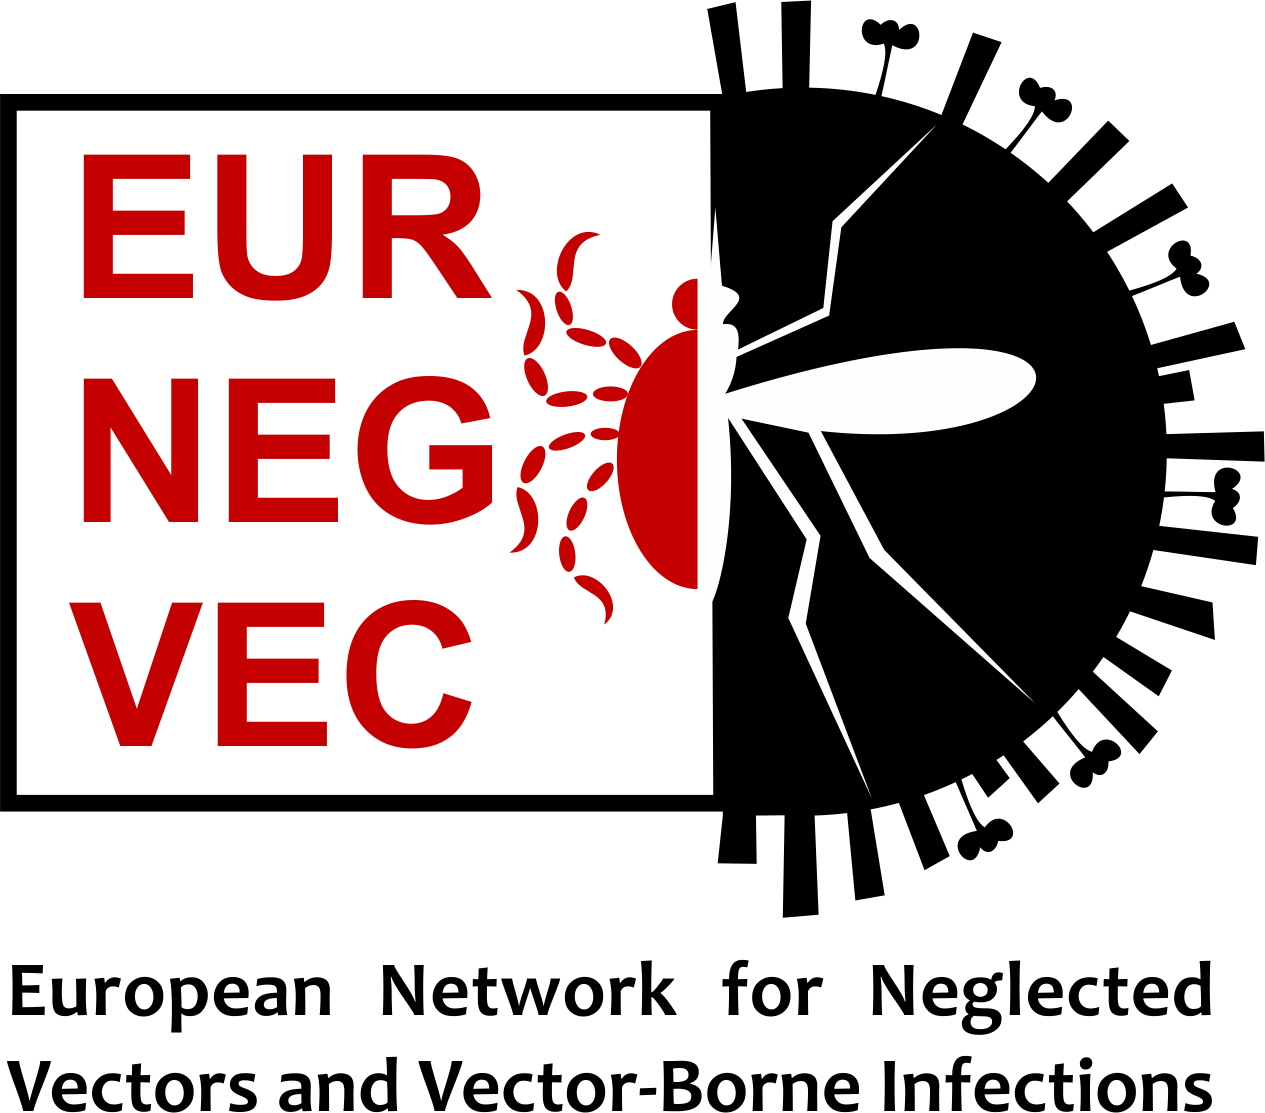 Conference clipart kickoff meeting. Logo eurnegvec high res